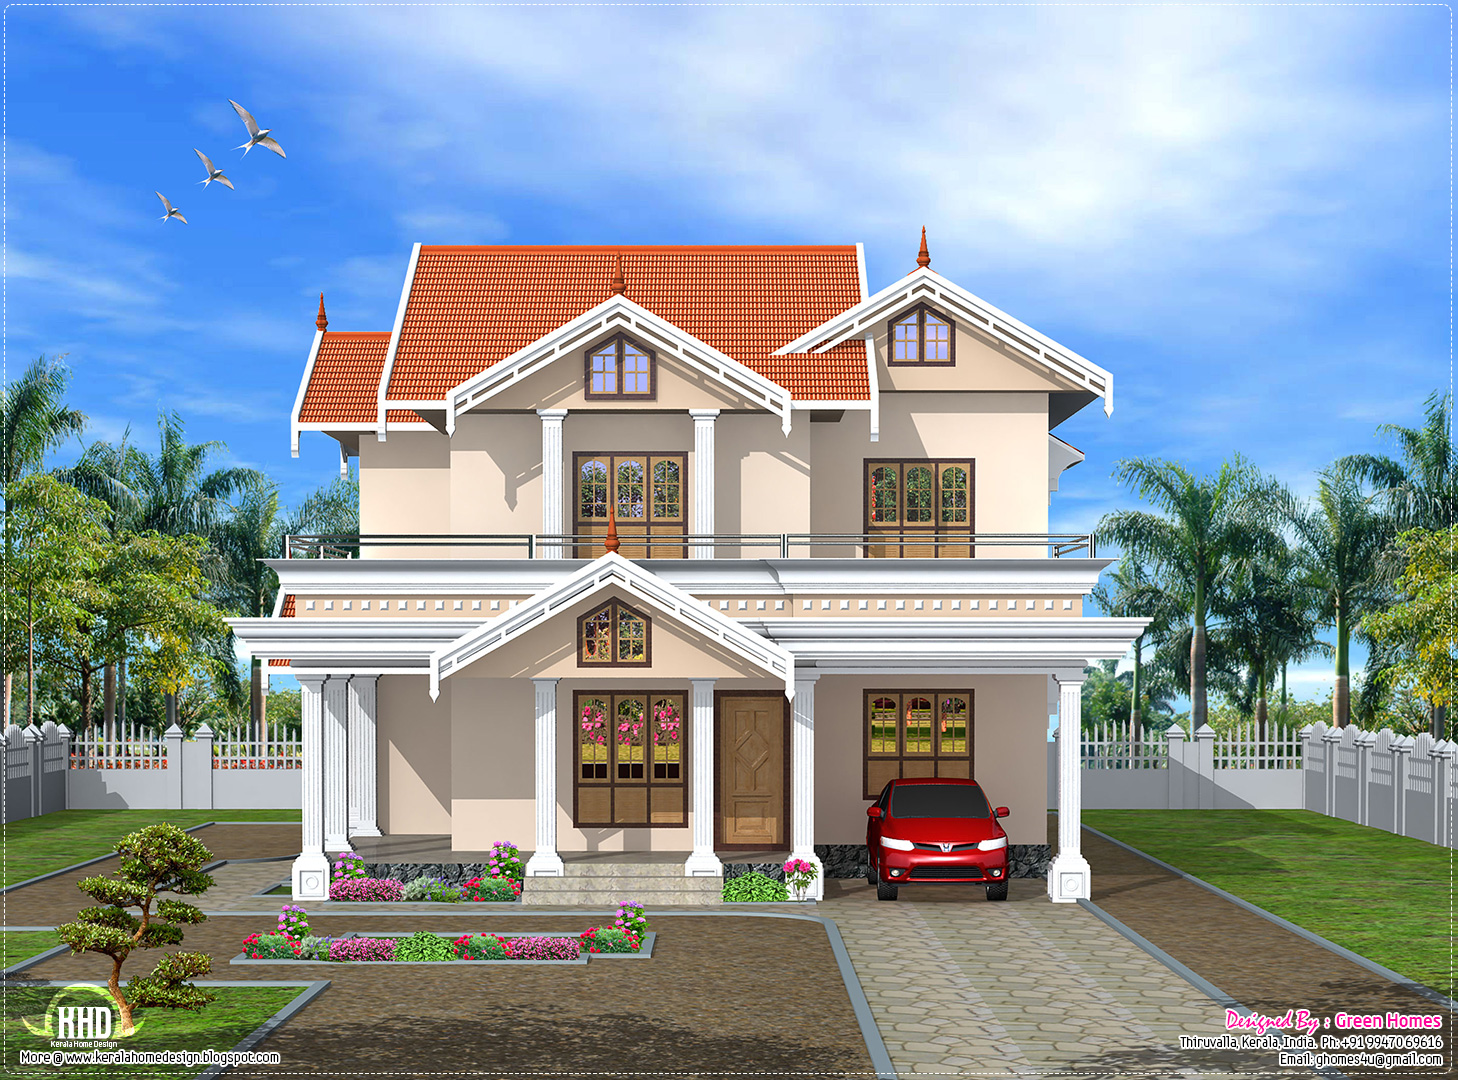 Stunning Front House Elevation Design 1458 x 1080 · 766 kB · jpeg